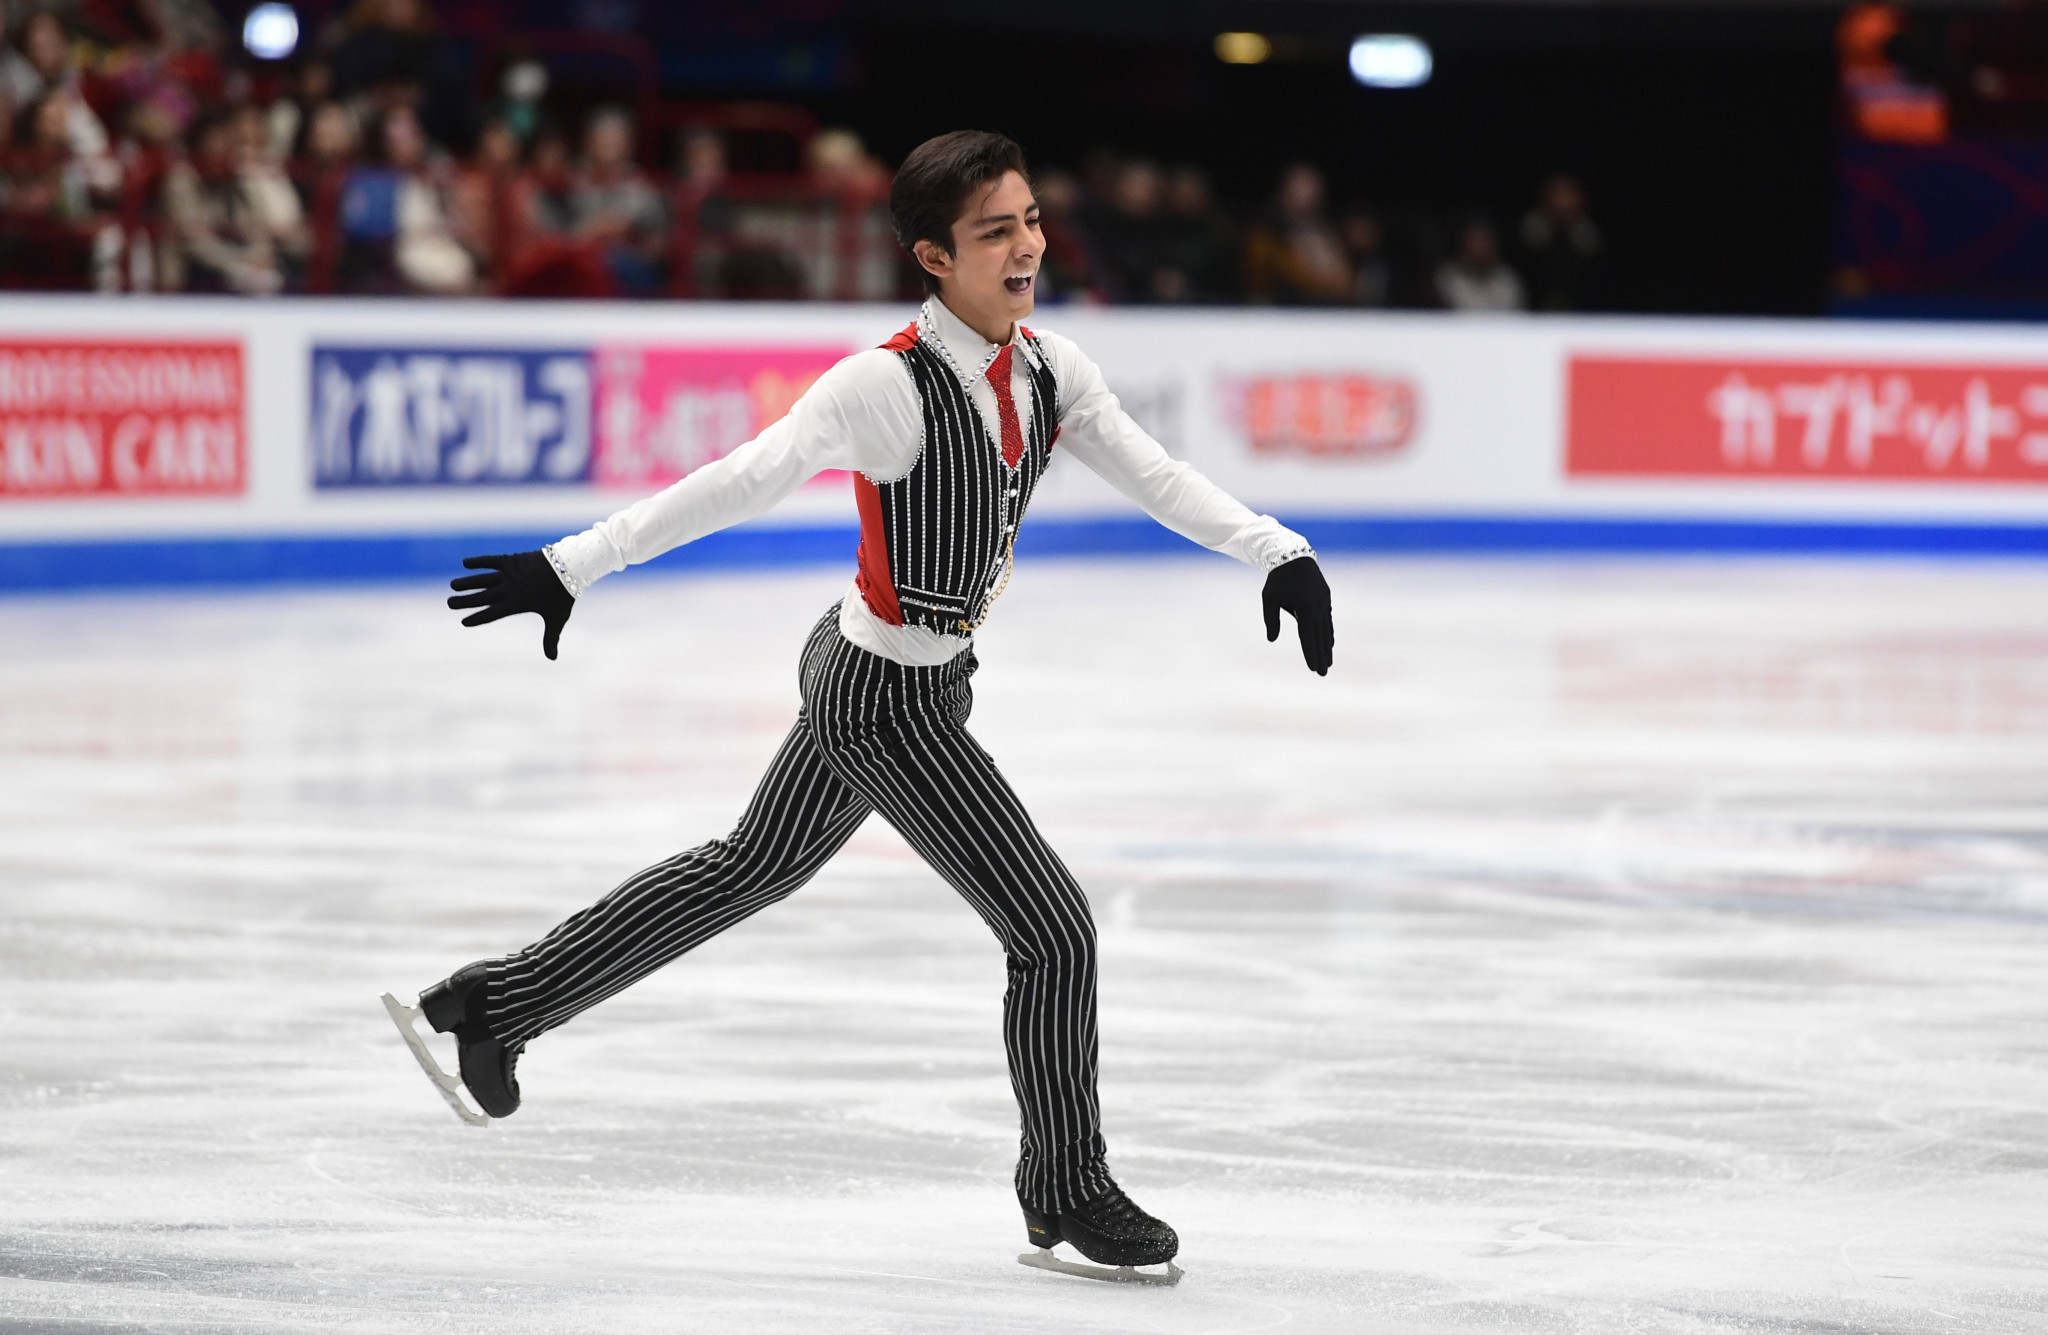 Mexican figure skater Carrillo returns to ice with Beijing 2022 qualification in his sights